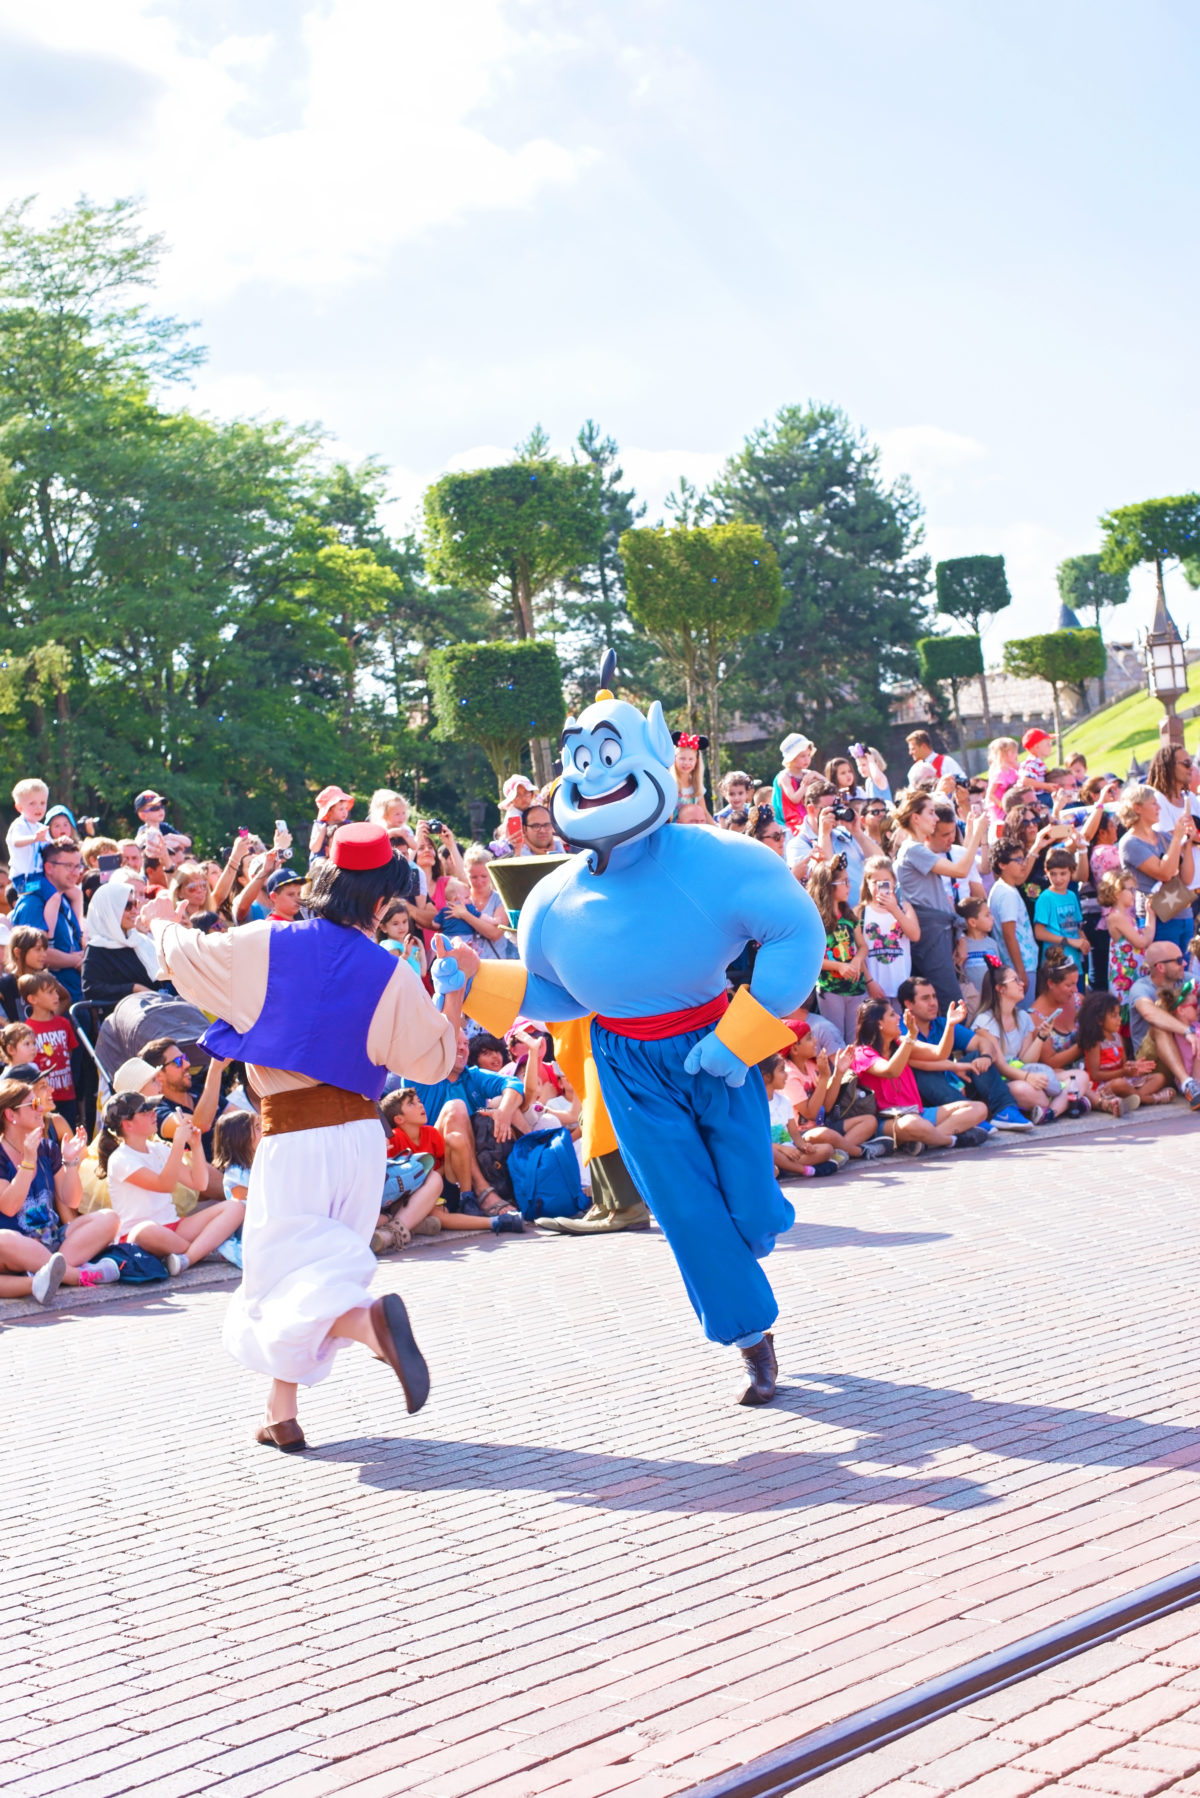 Aladdin and Genie Parade disneyland paris